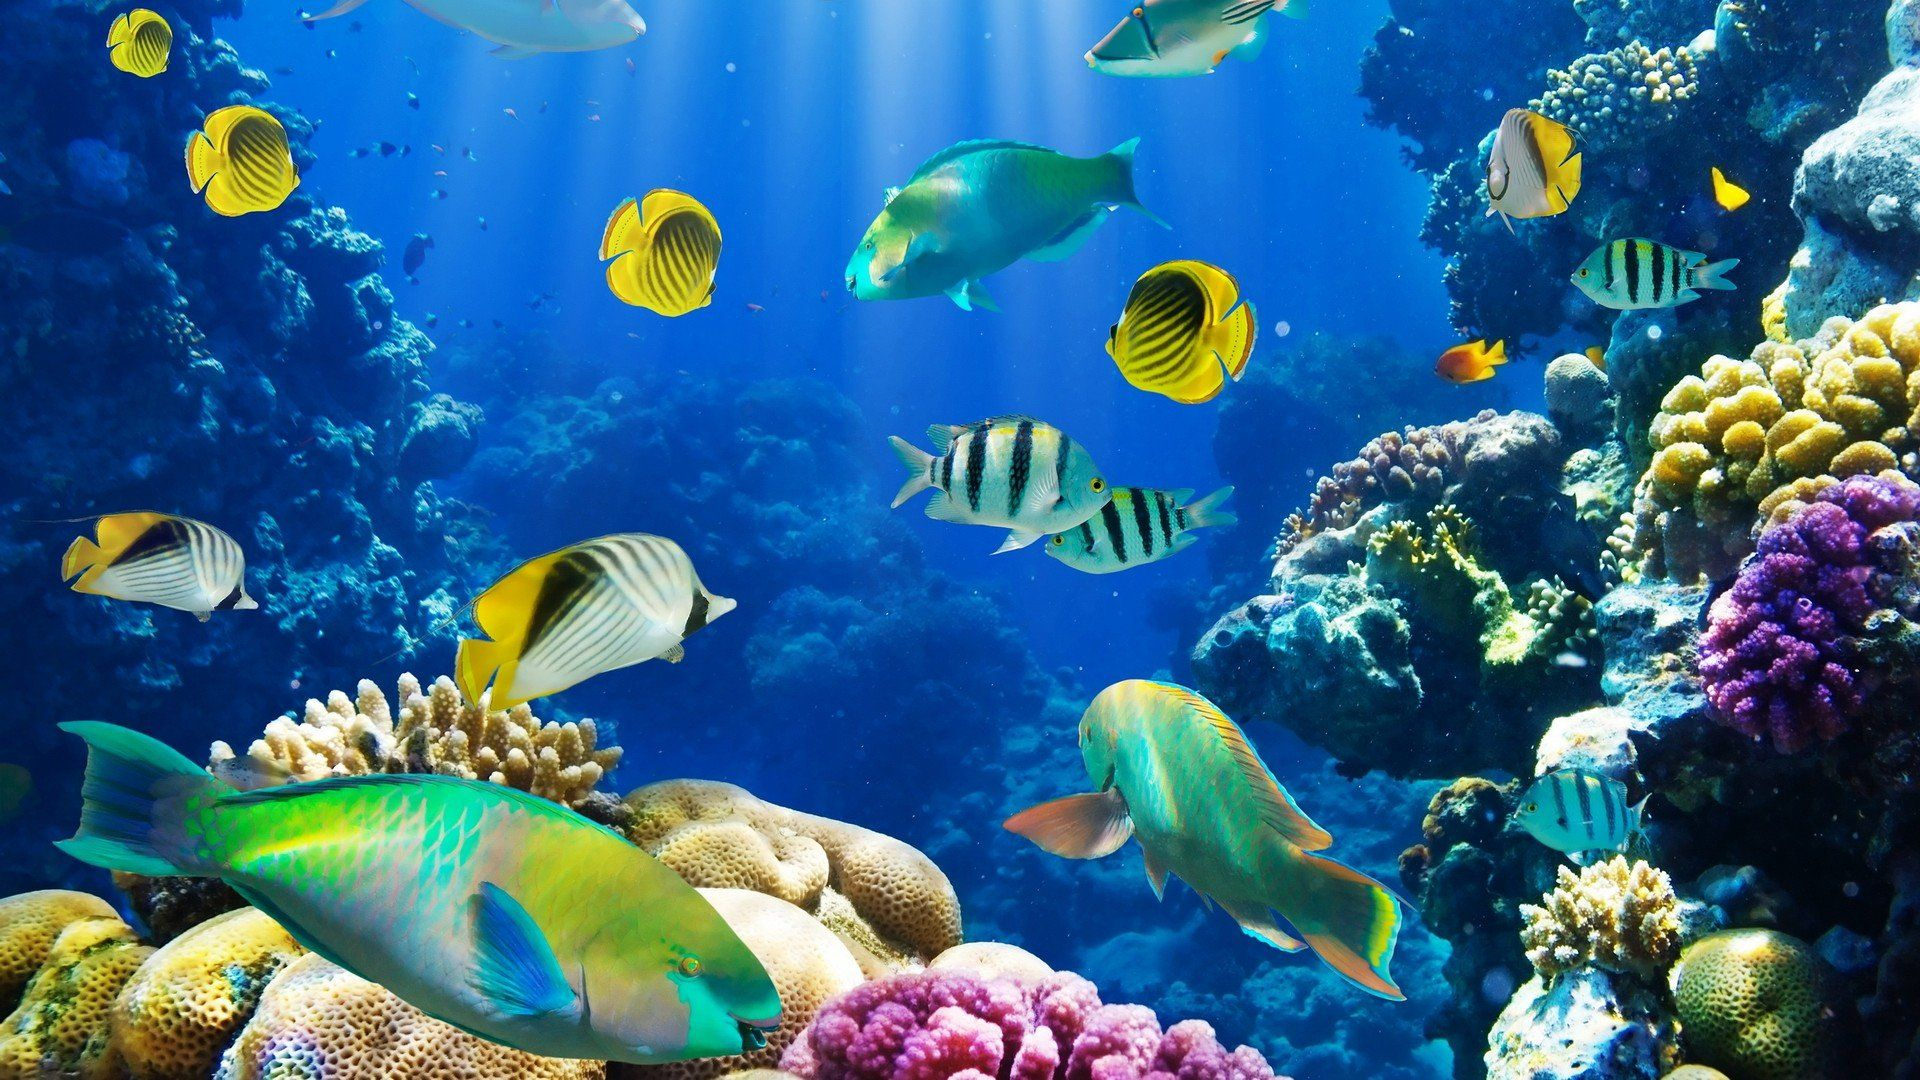 Beautiful Fishes In Water High Definition Wallpaper Fish Background Fish Wallpaper Underwater Wallpaper